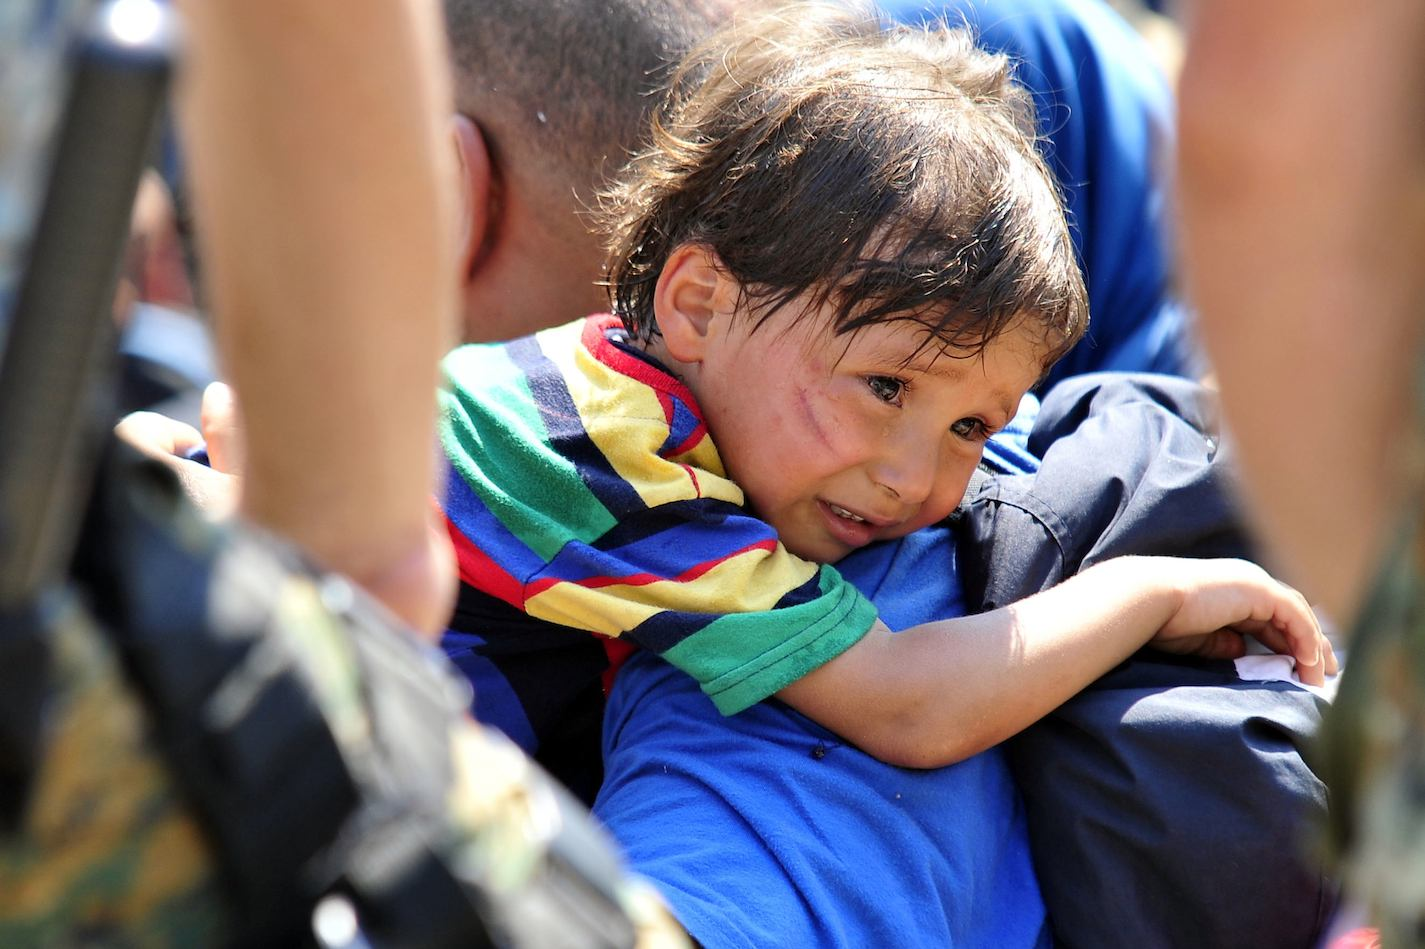 On 26 August, a distressed migrant child rests over a shoulder in a Macedonian town on the border with Greece.